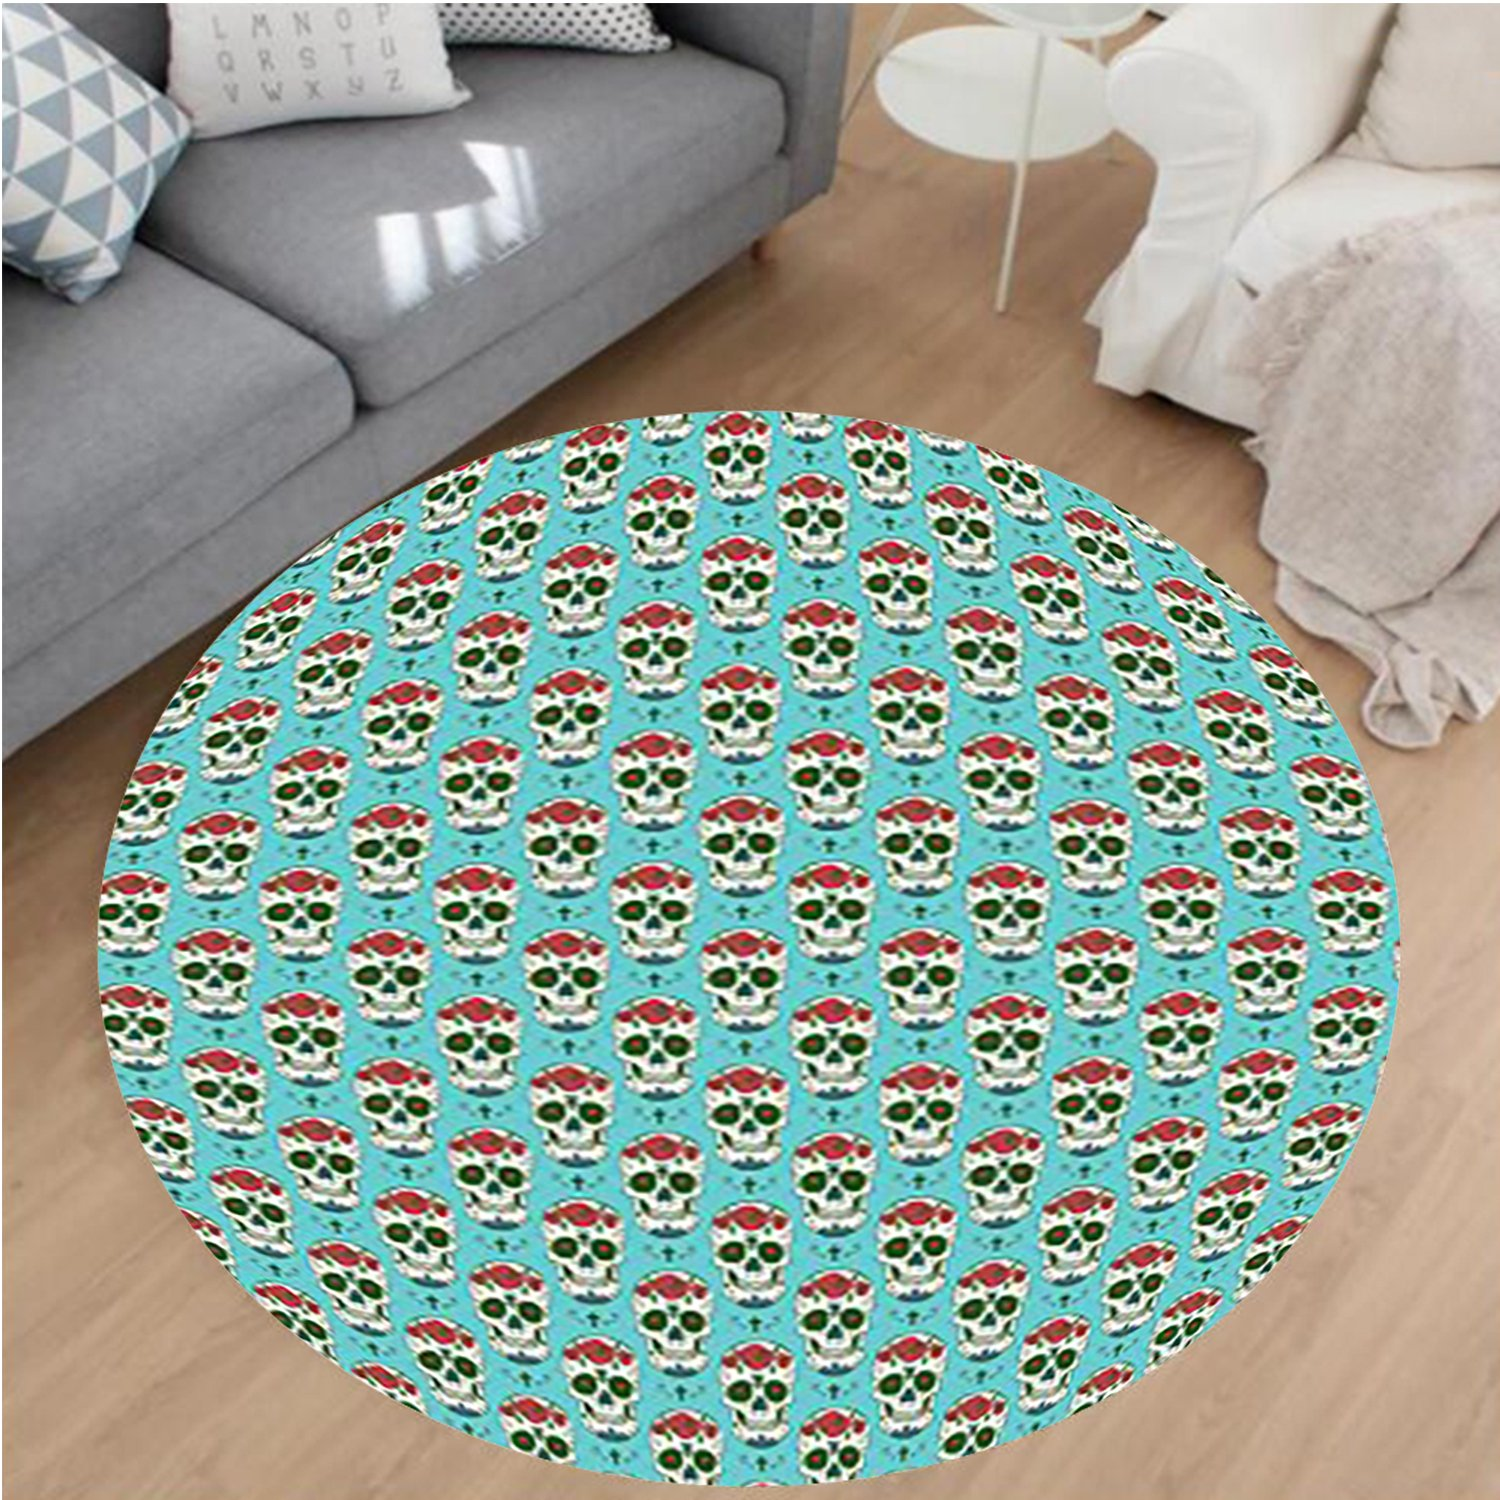 Nalahome Modern Flannel Microfiber Non-Slip Machine Washable Round Area Rug-Skulls Decorations Christian Cross And Roses On Skull Pattern Mexican Vintage Style area rugs Home Decor-Round 79'' by Nalahome